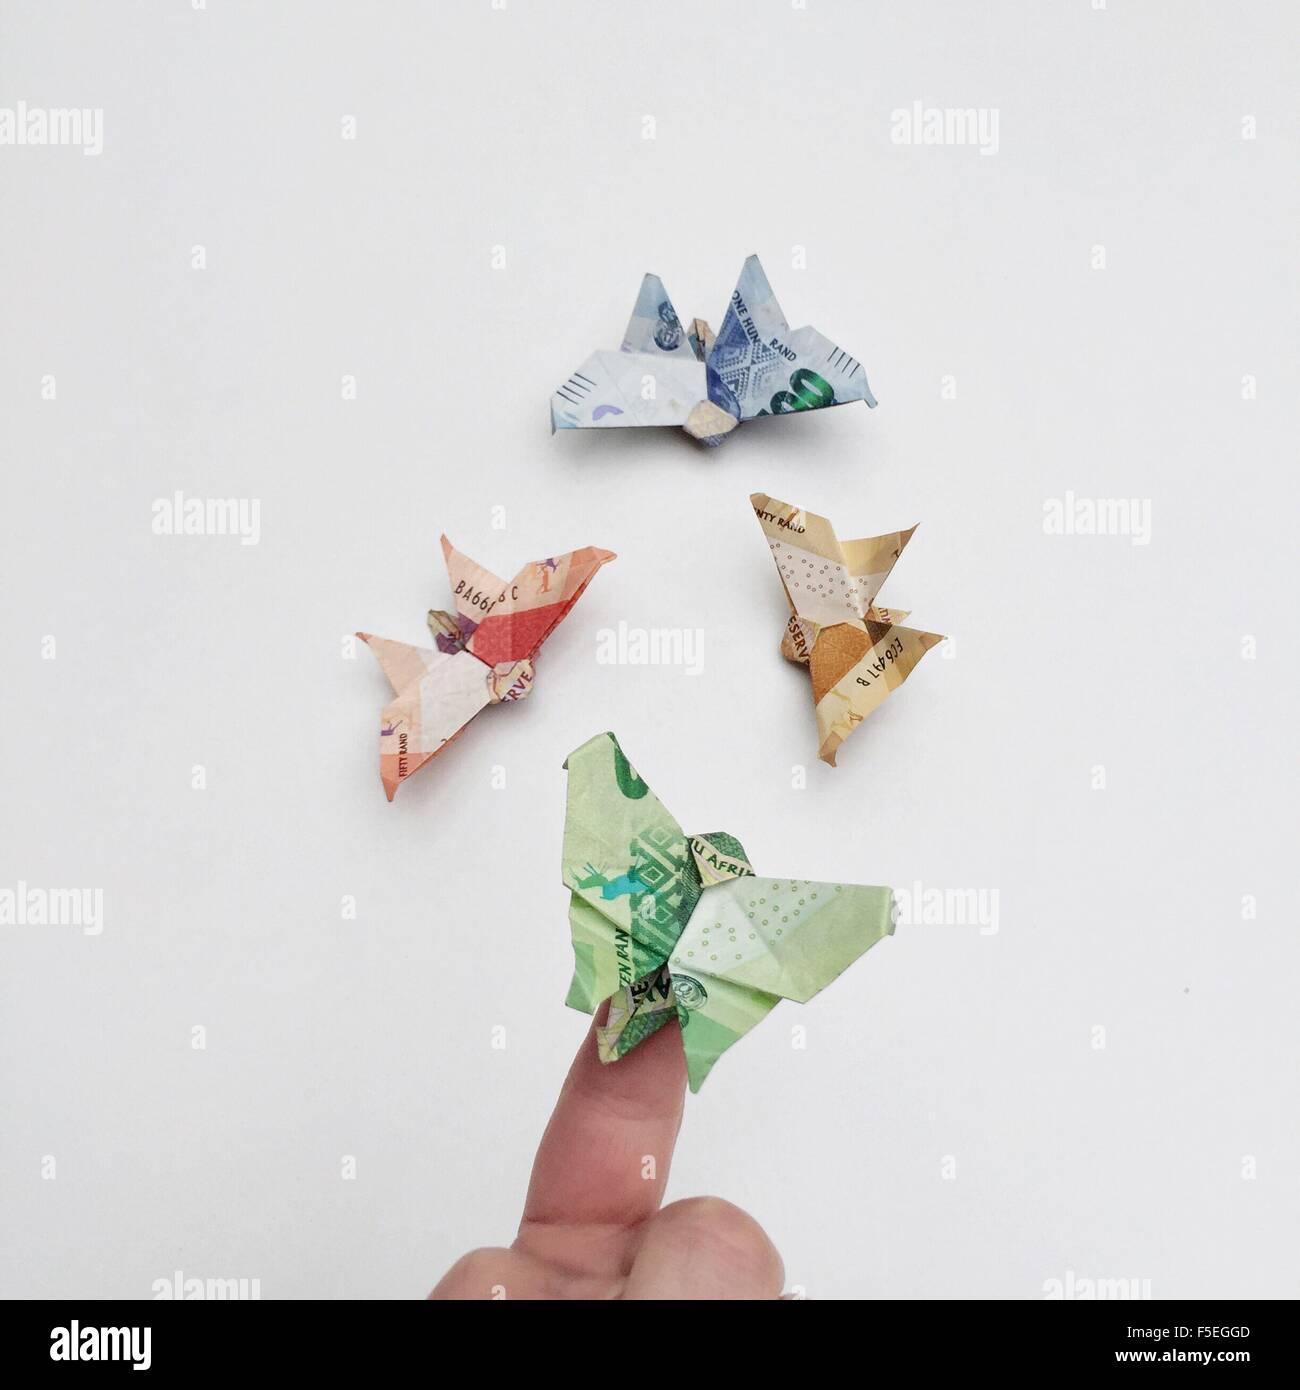 Origami butterflies made of paper money - Stock Image